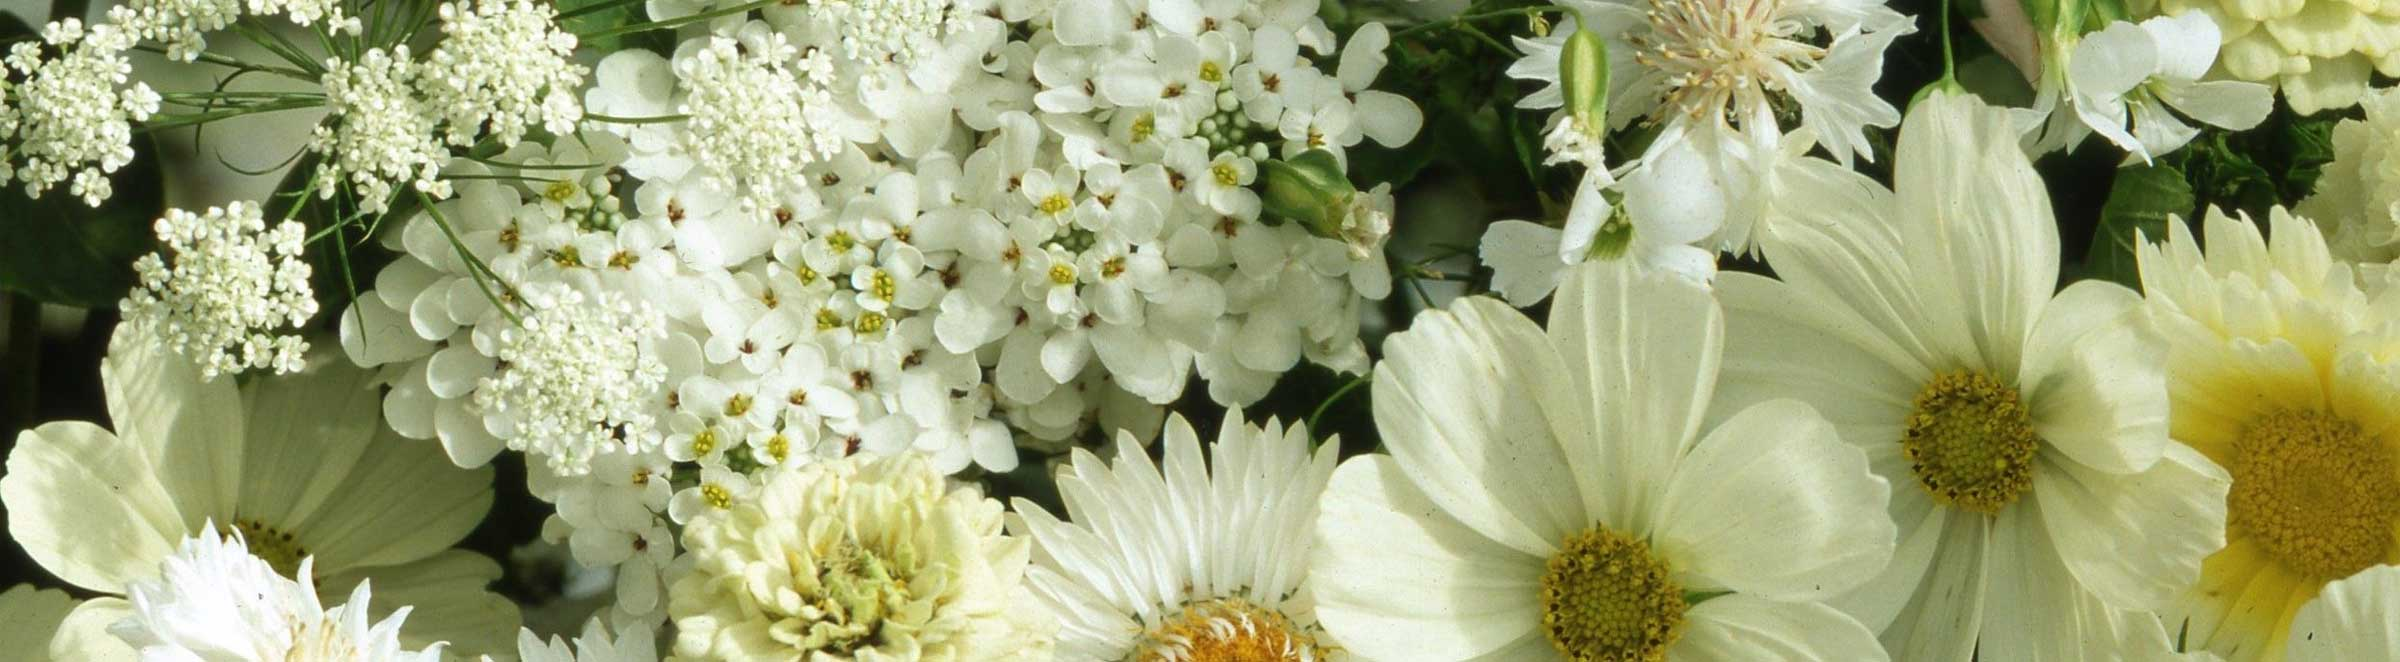 image of white flowers